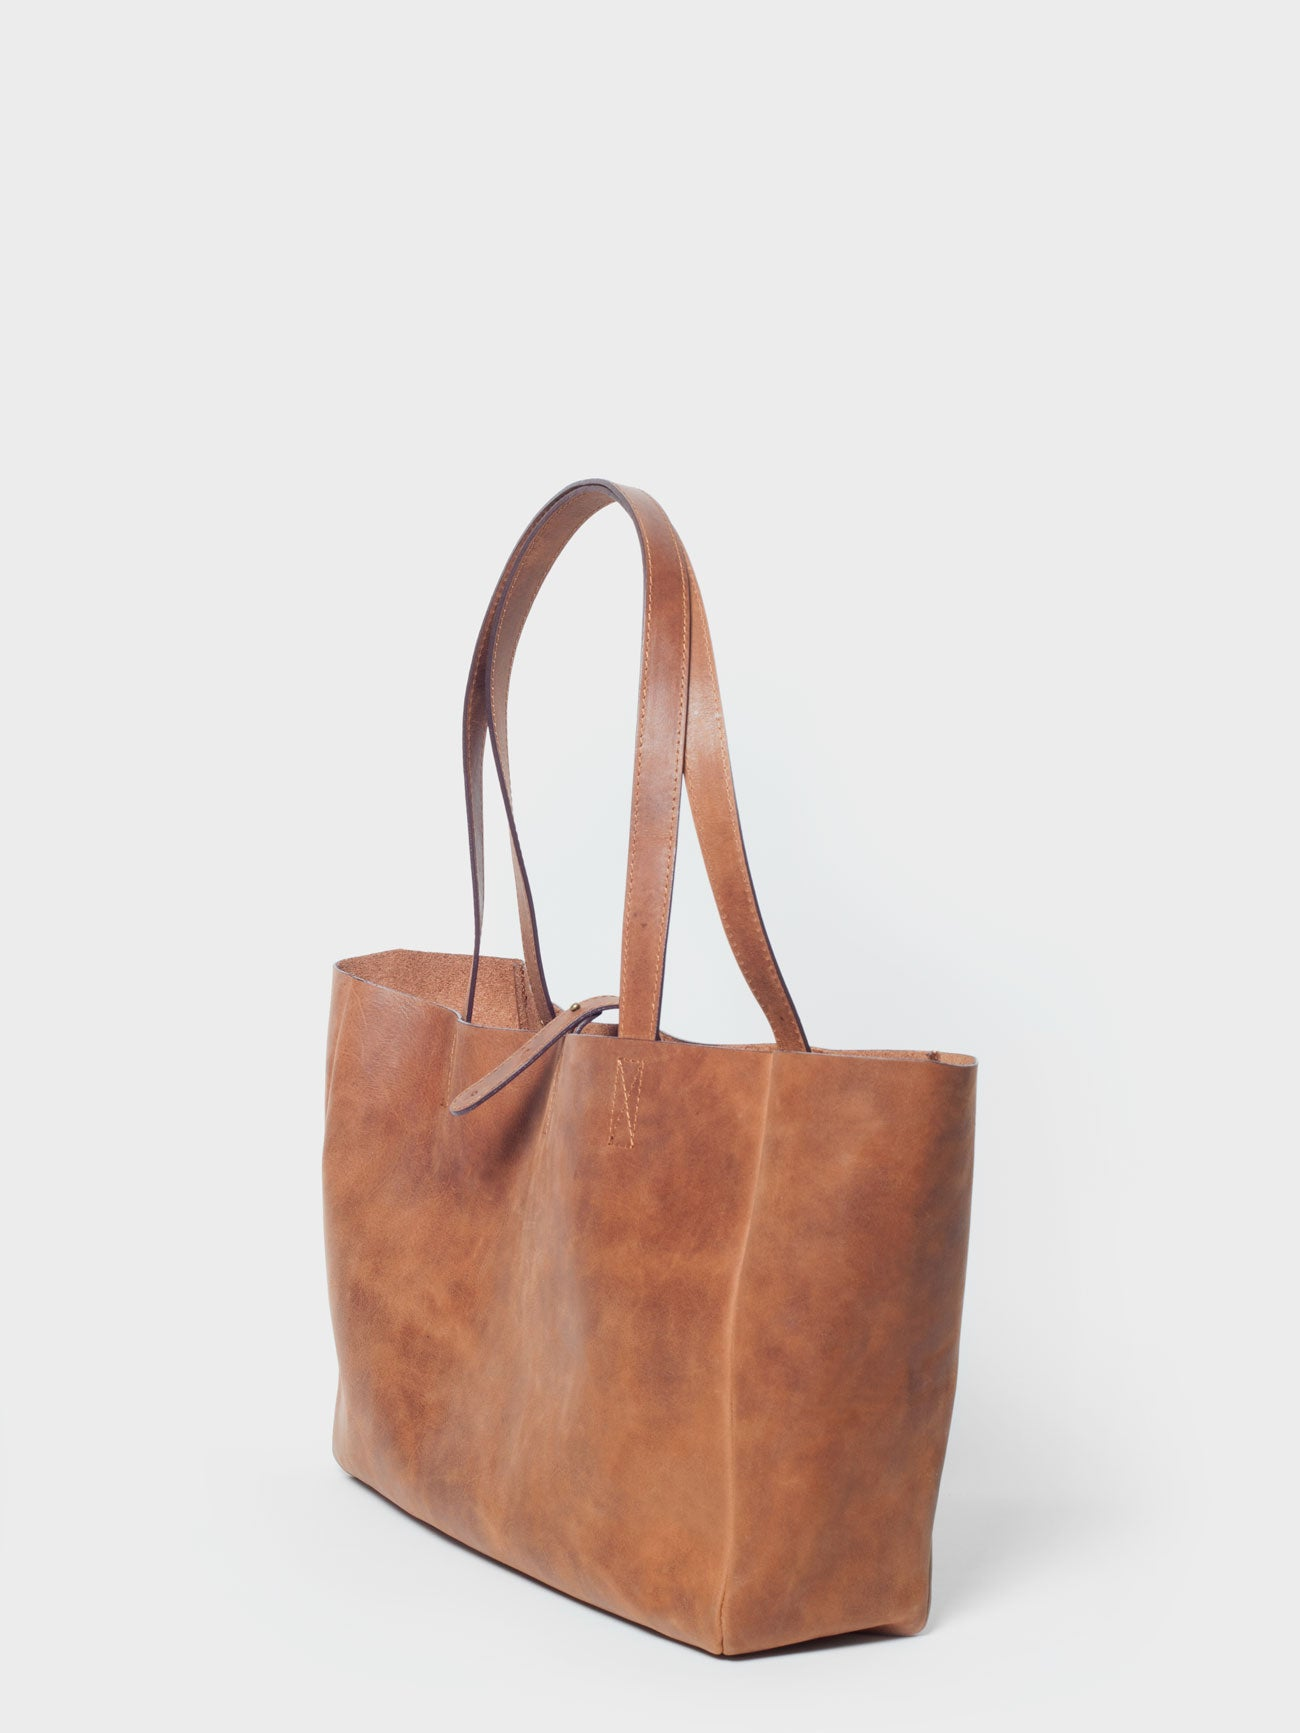 PARK Tote Bag TB03 Brown